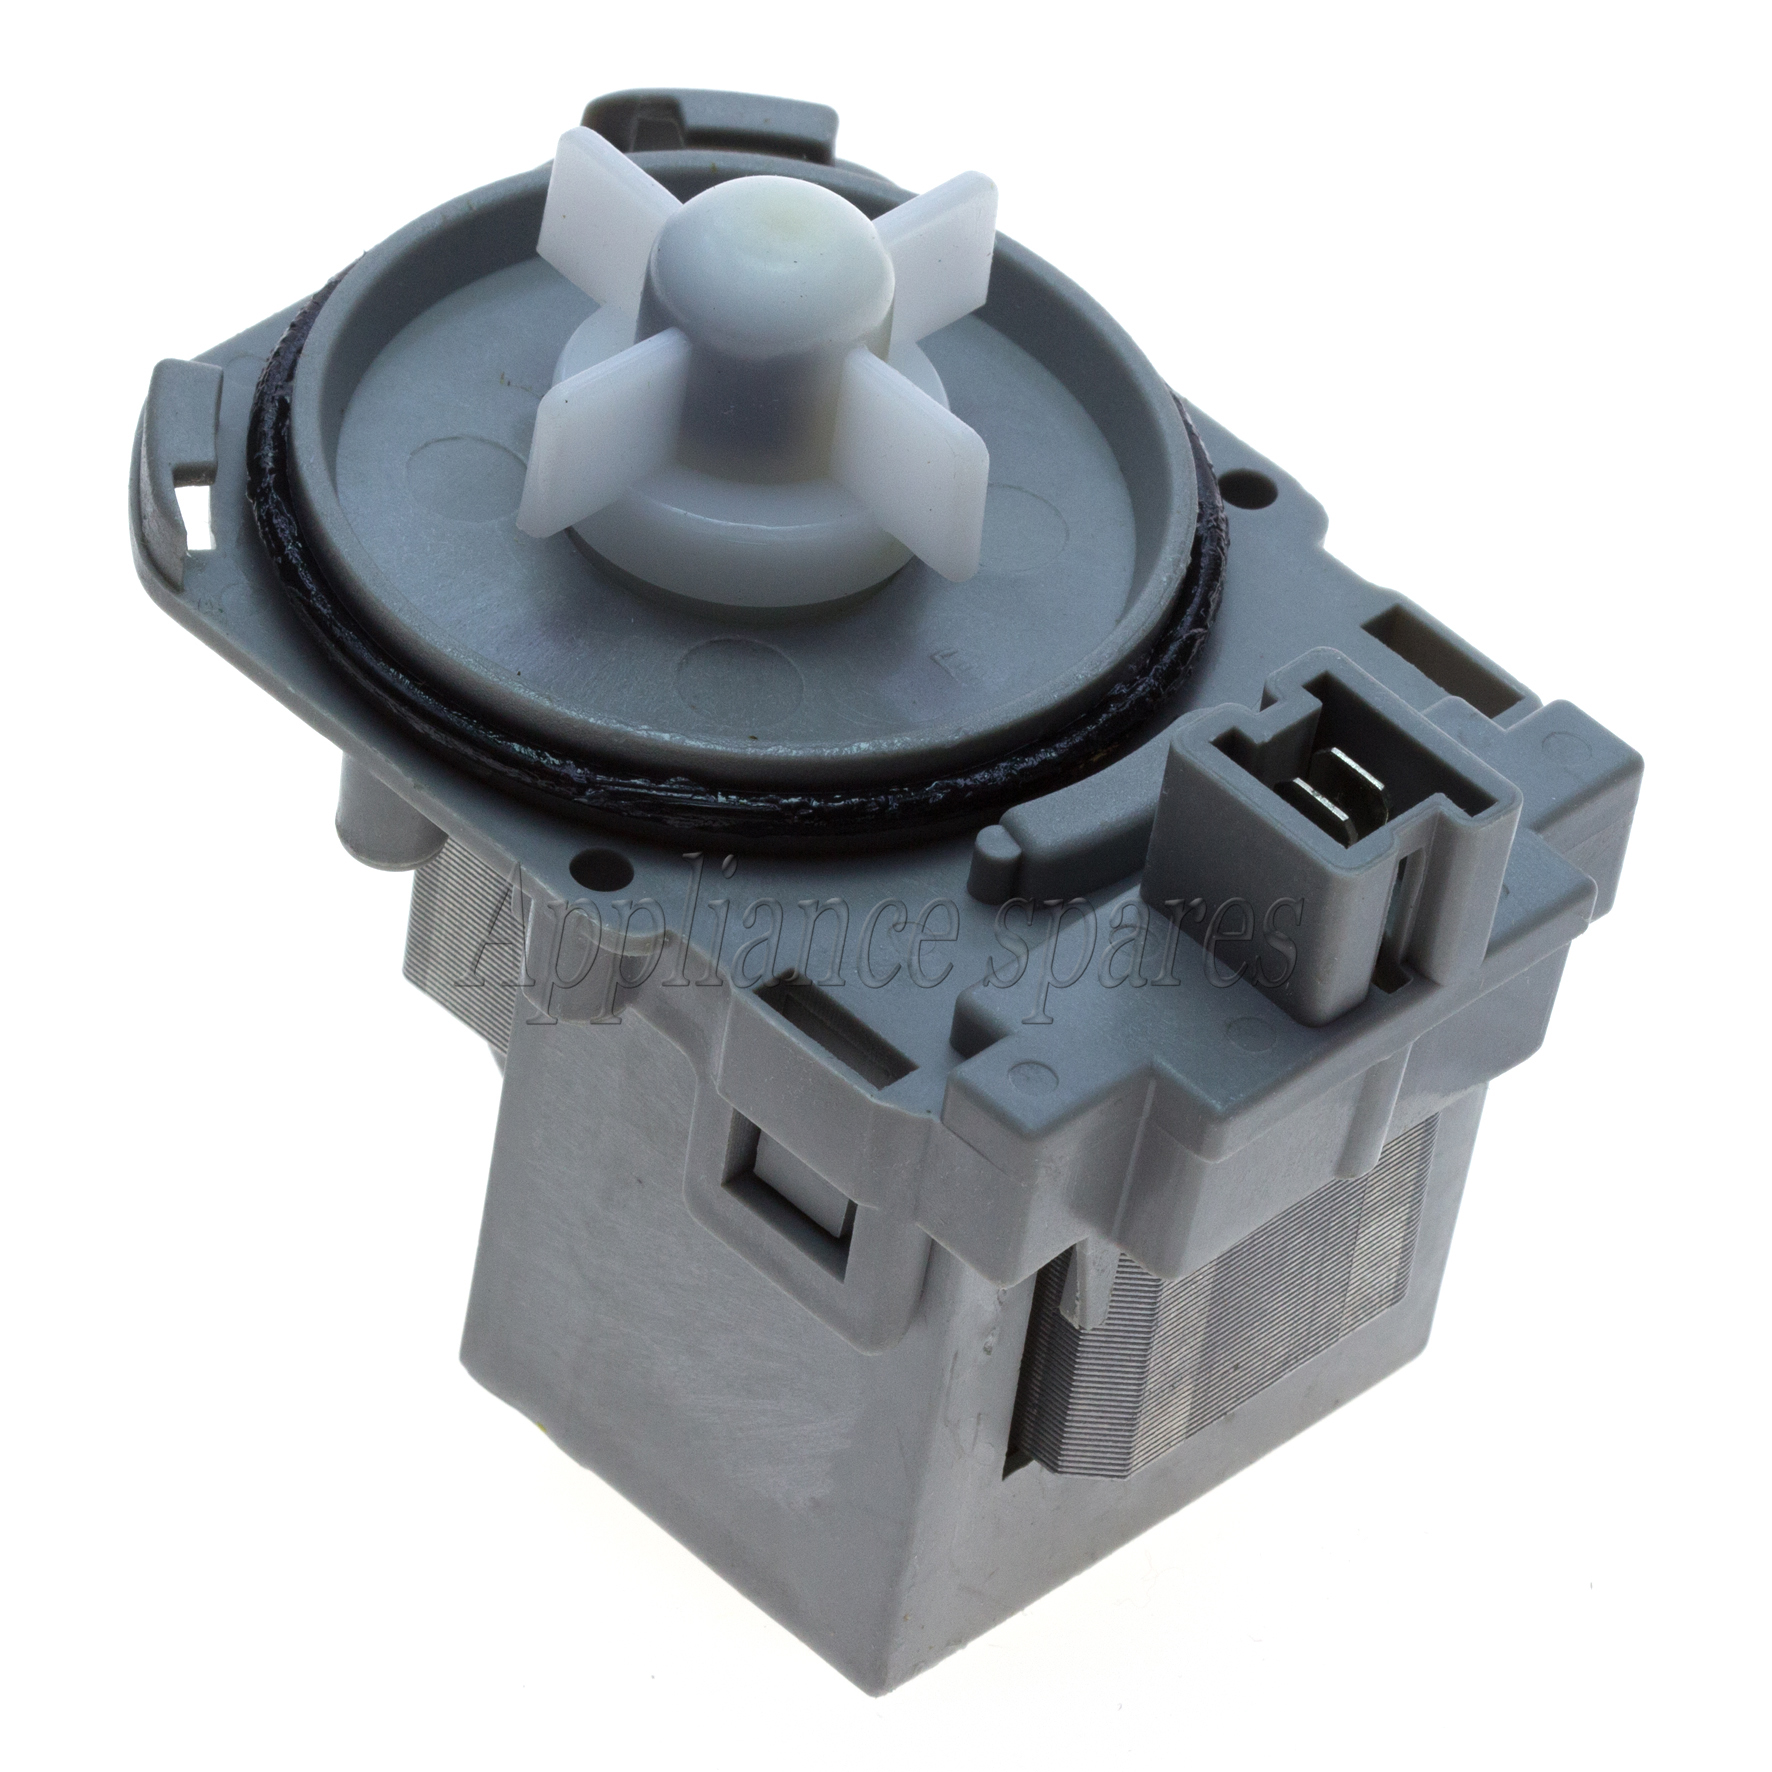 Washing Machine Parts ~ Bosch front loader washing machine magnetic drain pump